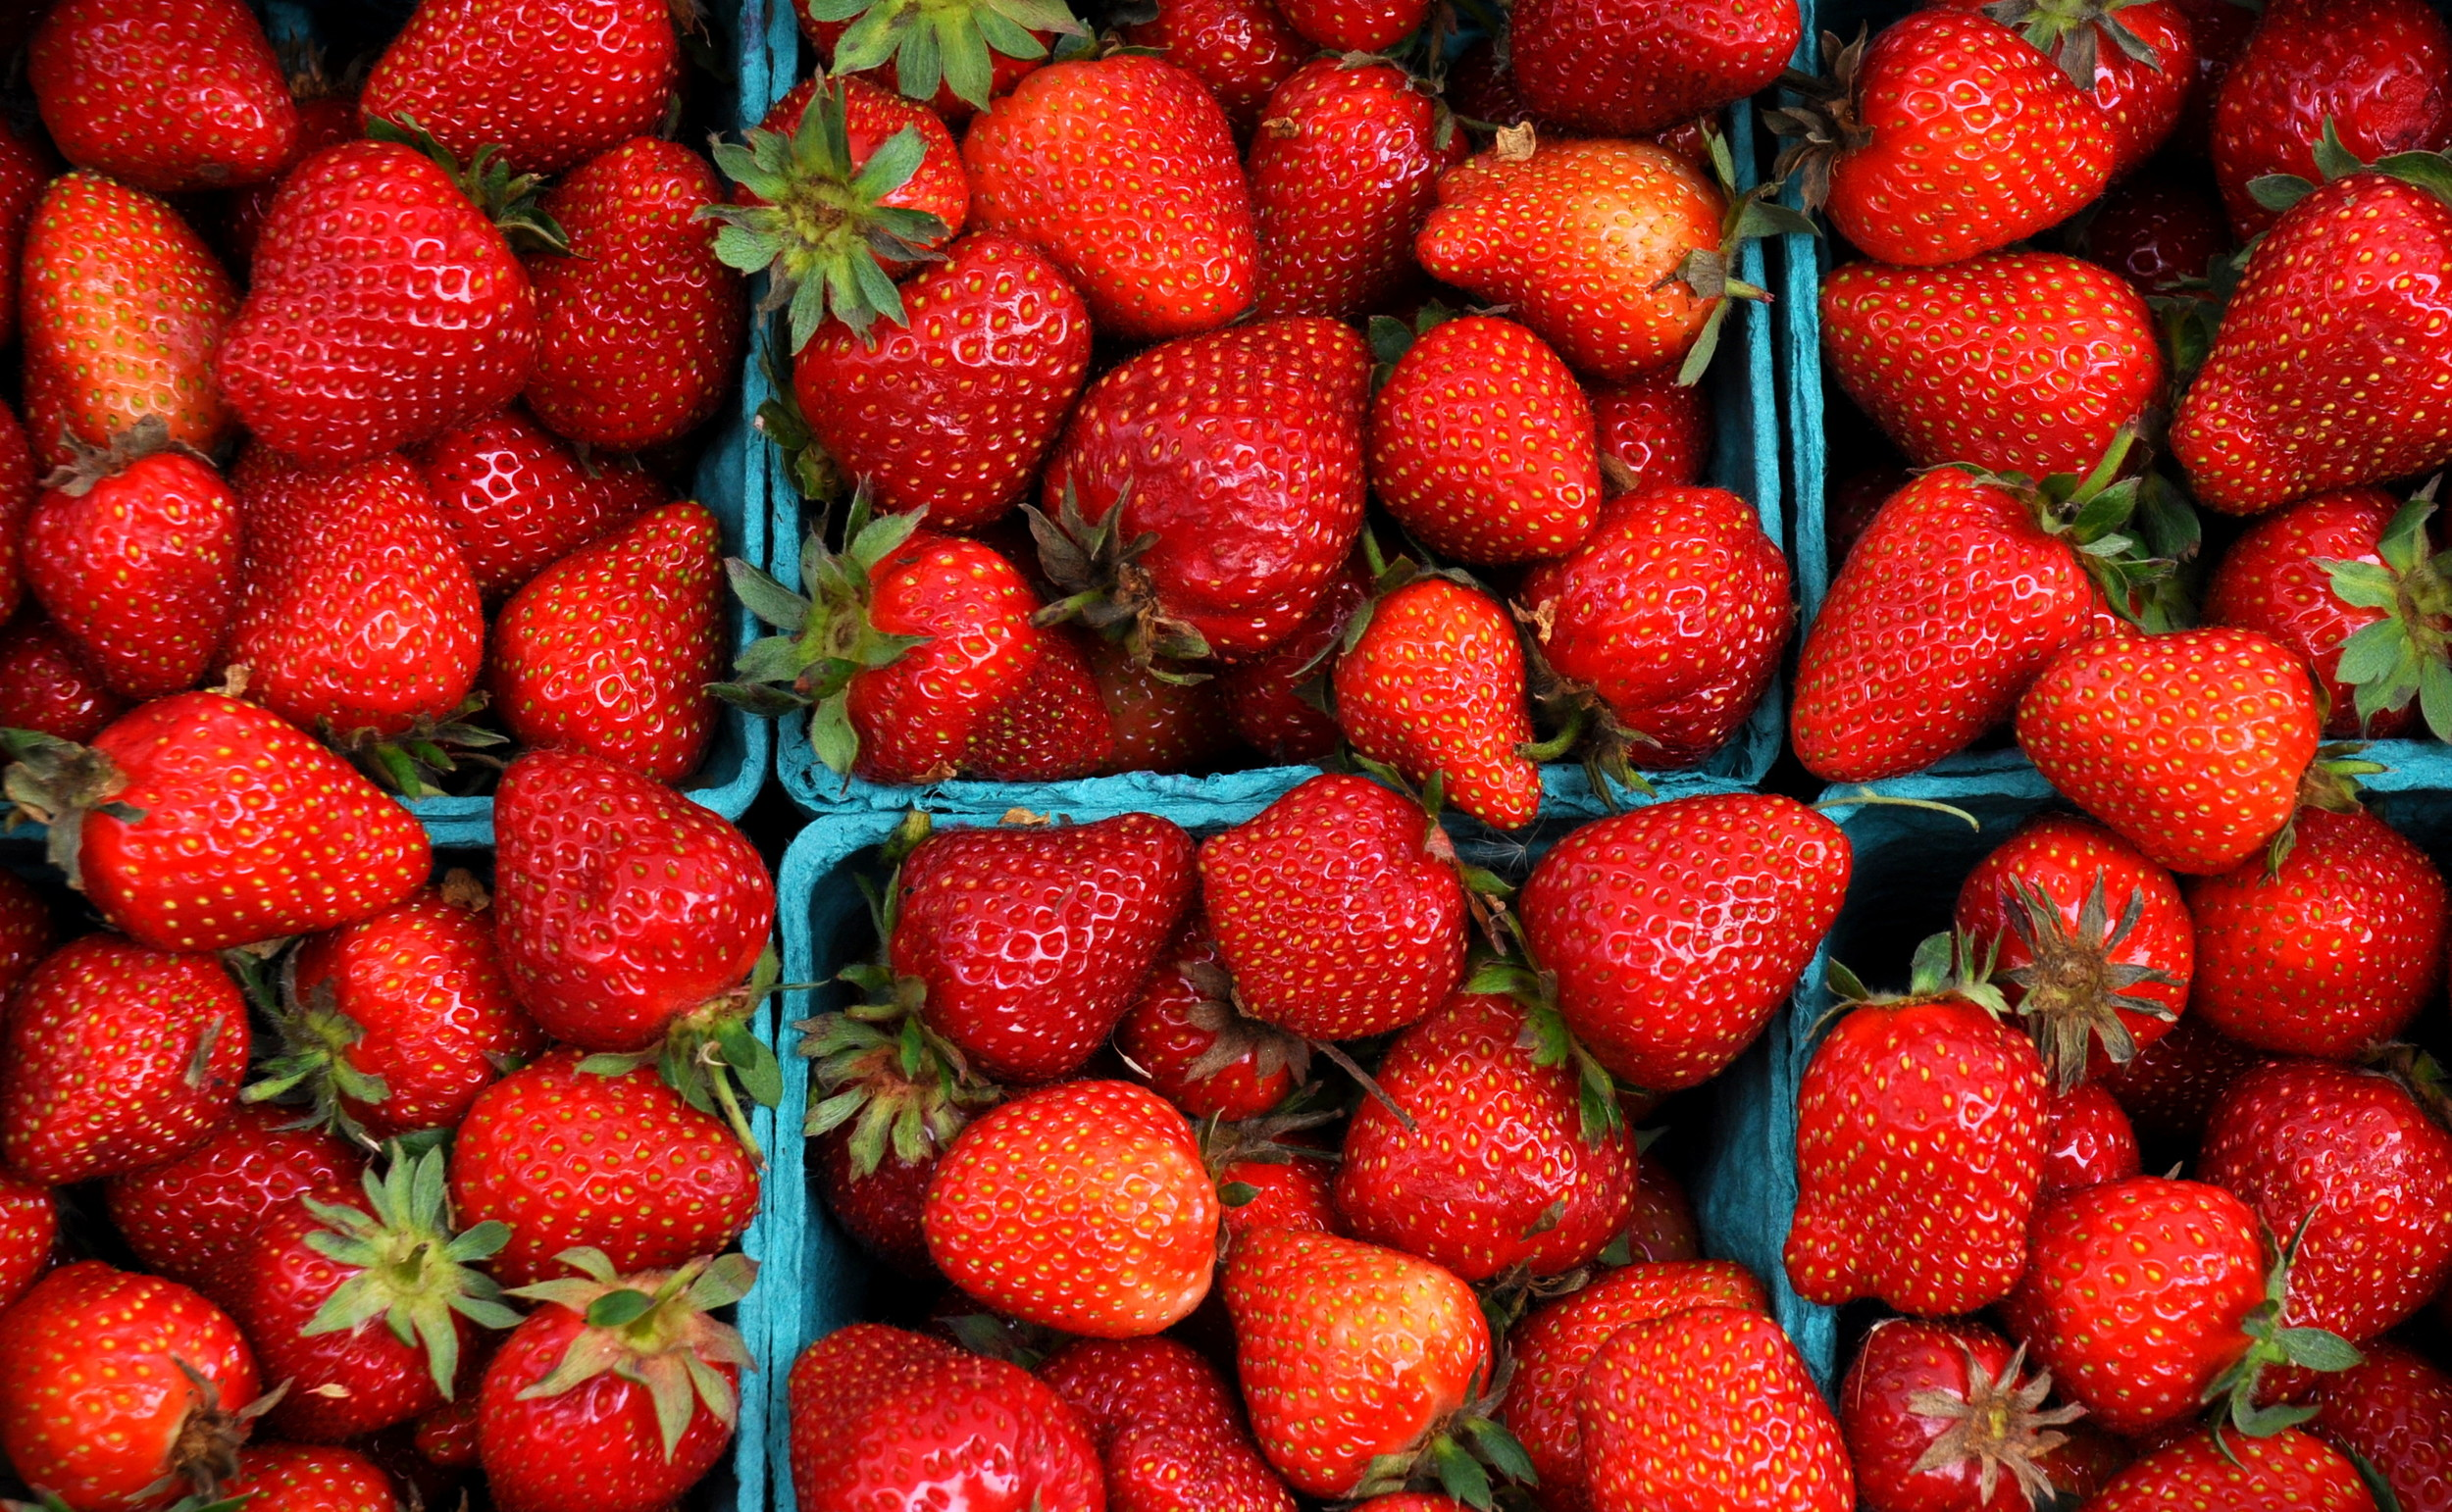 Organic strawberries from Gaia's Harmony Farm. Photo copyright 2014 by Zachary D. Lyons.